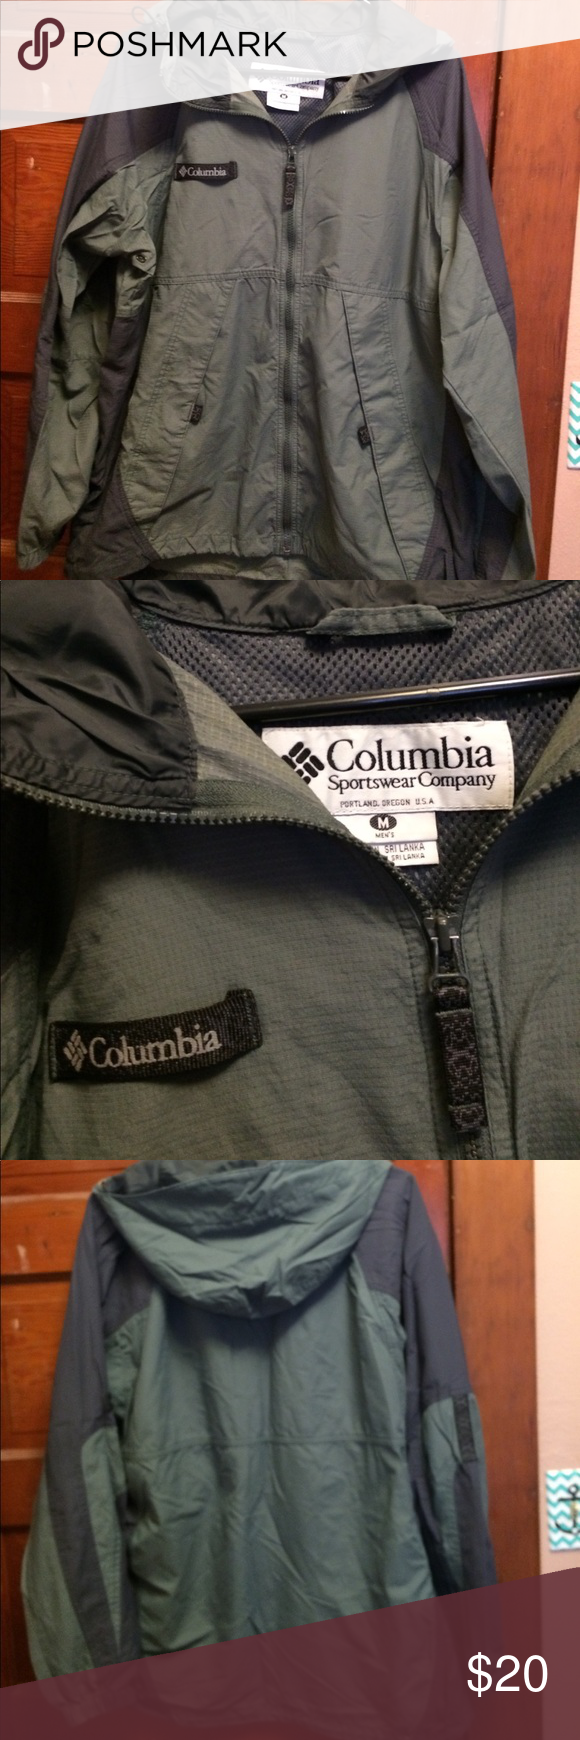 Men's Columbia jacket Size Medium, excellent shape!! Columbia spring/fall jacket, green/ gray. Columbia Jackets & Coats